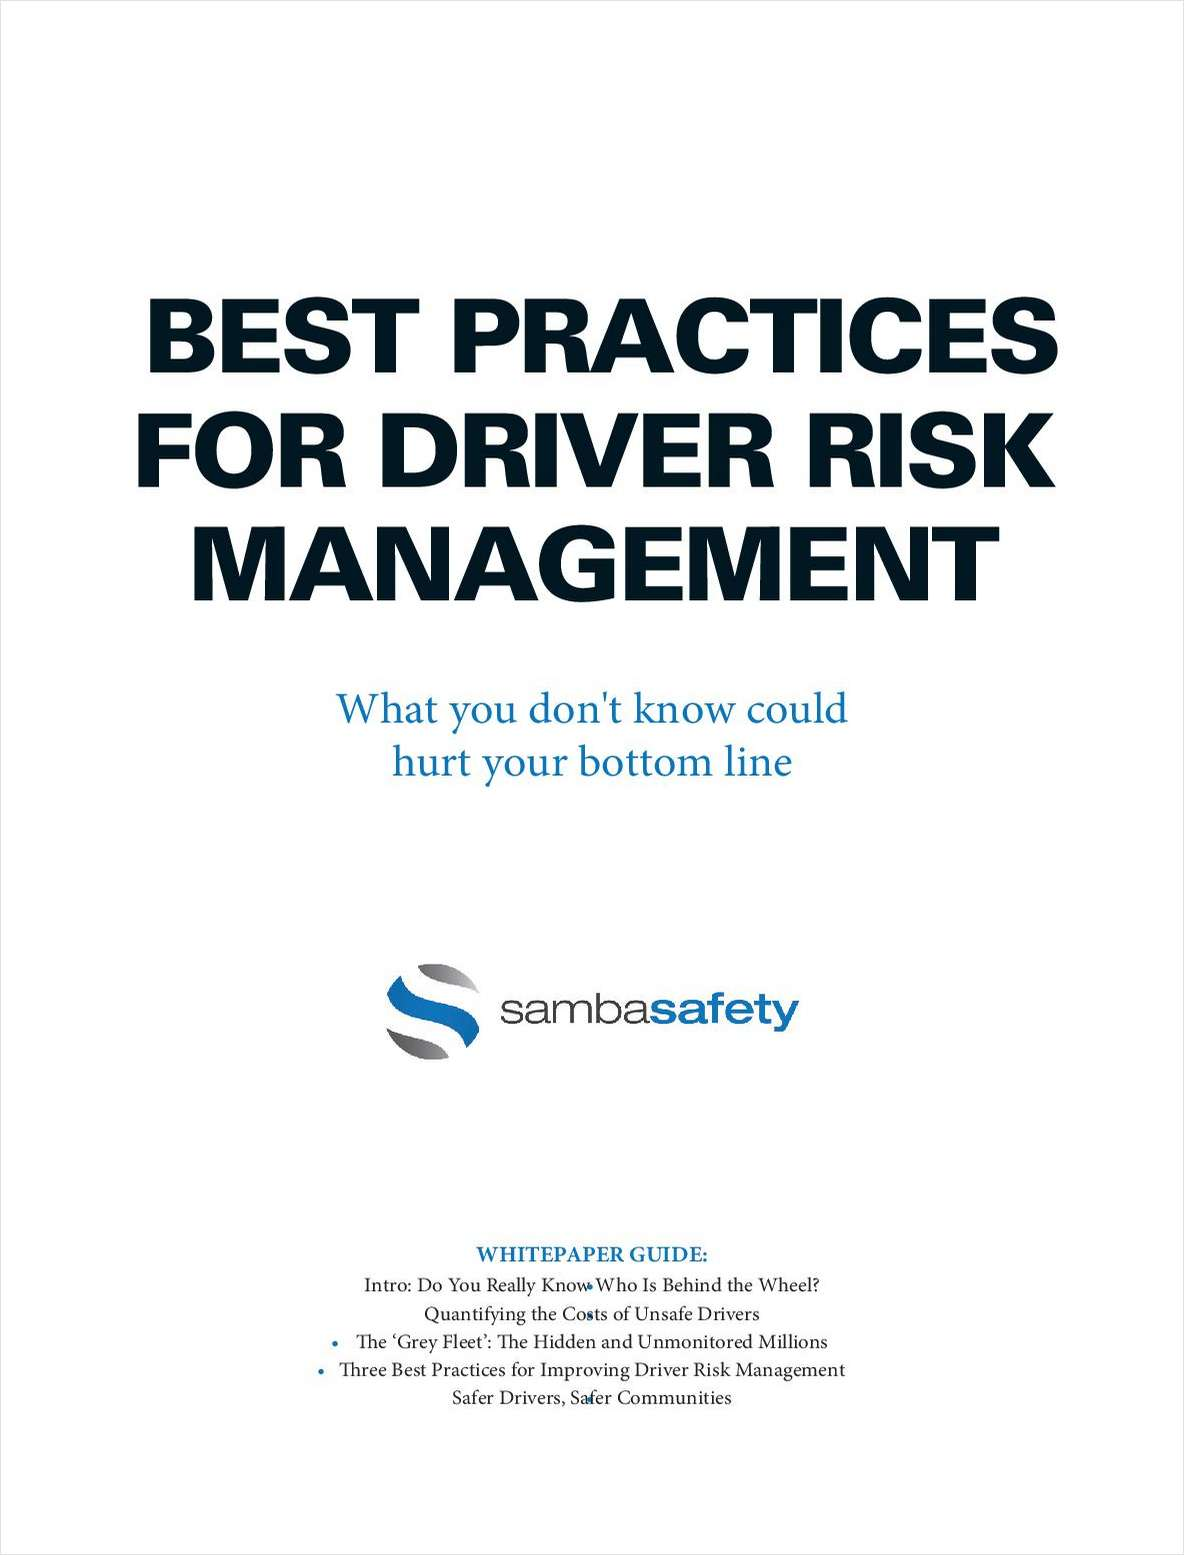 Best Practices for Driver Risk Management